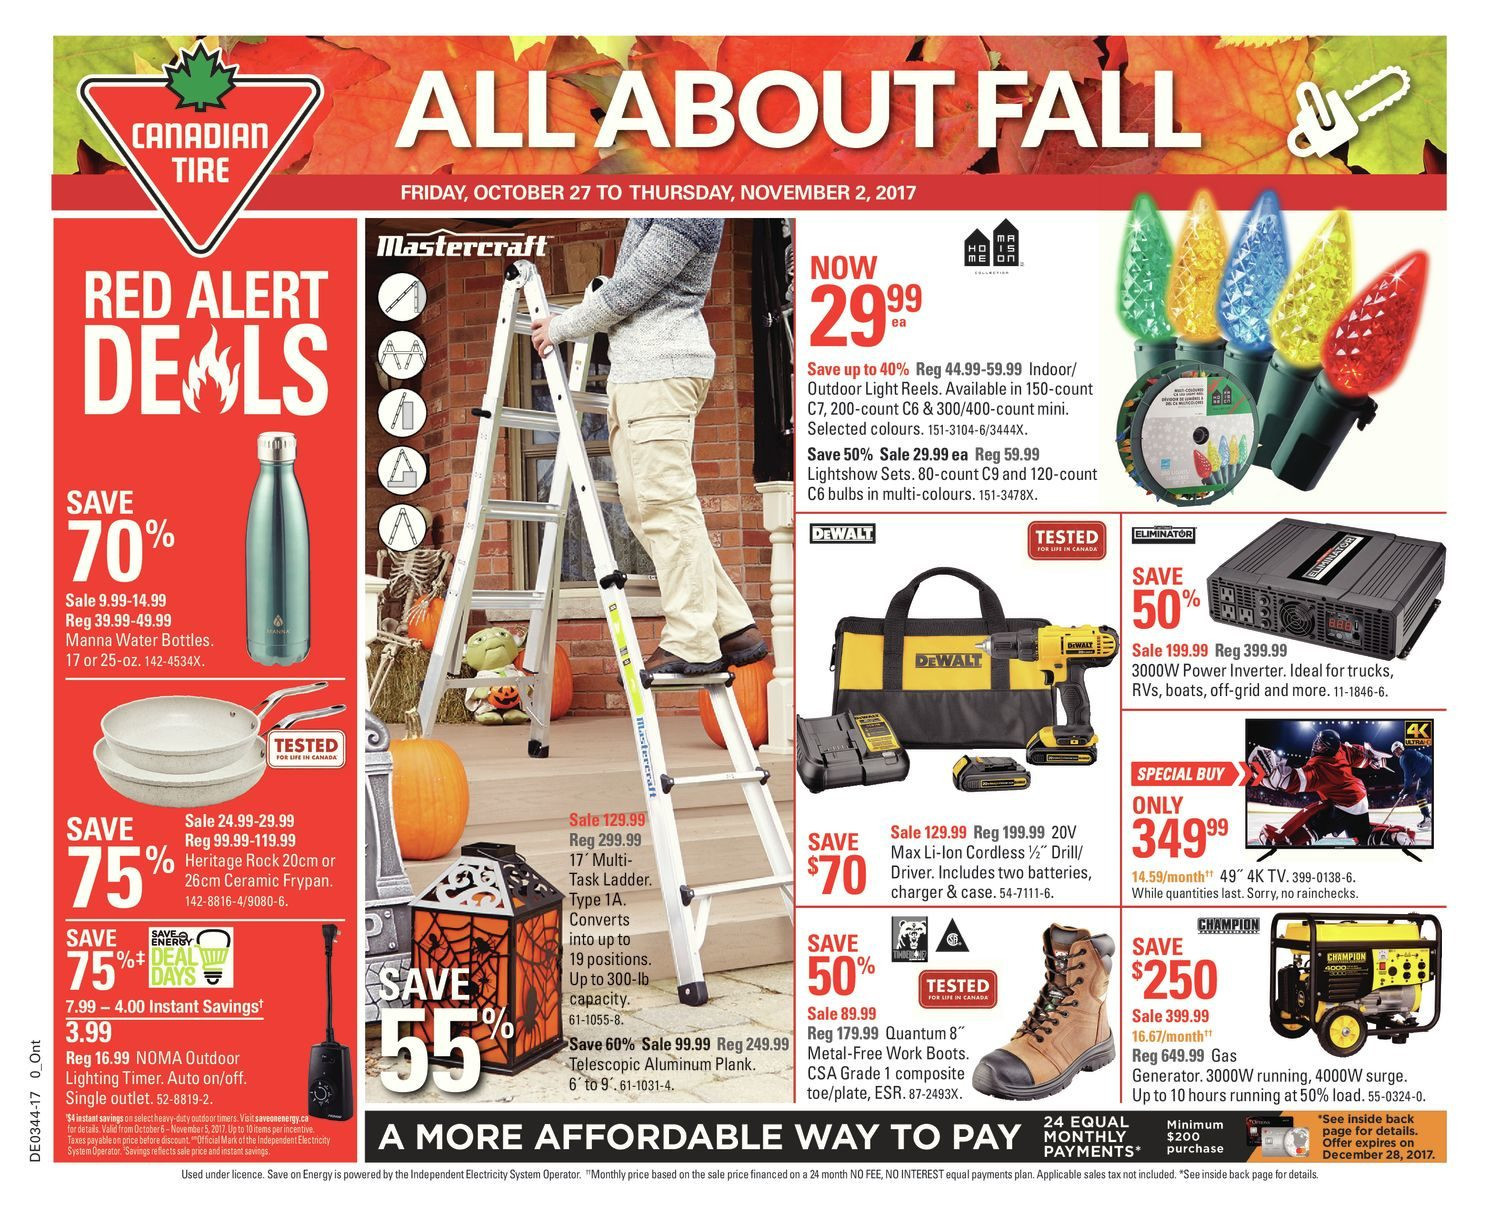 rona hardwood flooring sale of 13 great outdoor stair treads rona interior stairs inside outdoor stair treads rona unique canadian tire weekly flyer weekly all about fall oct 27 nov